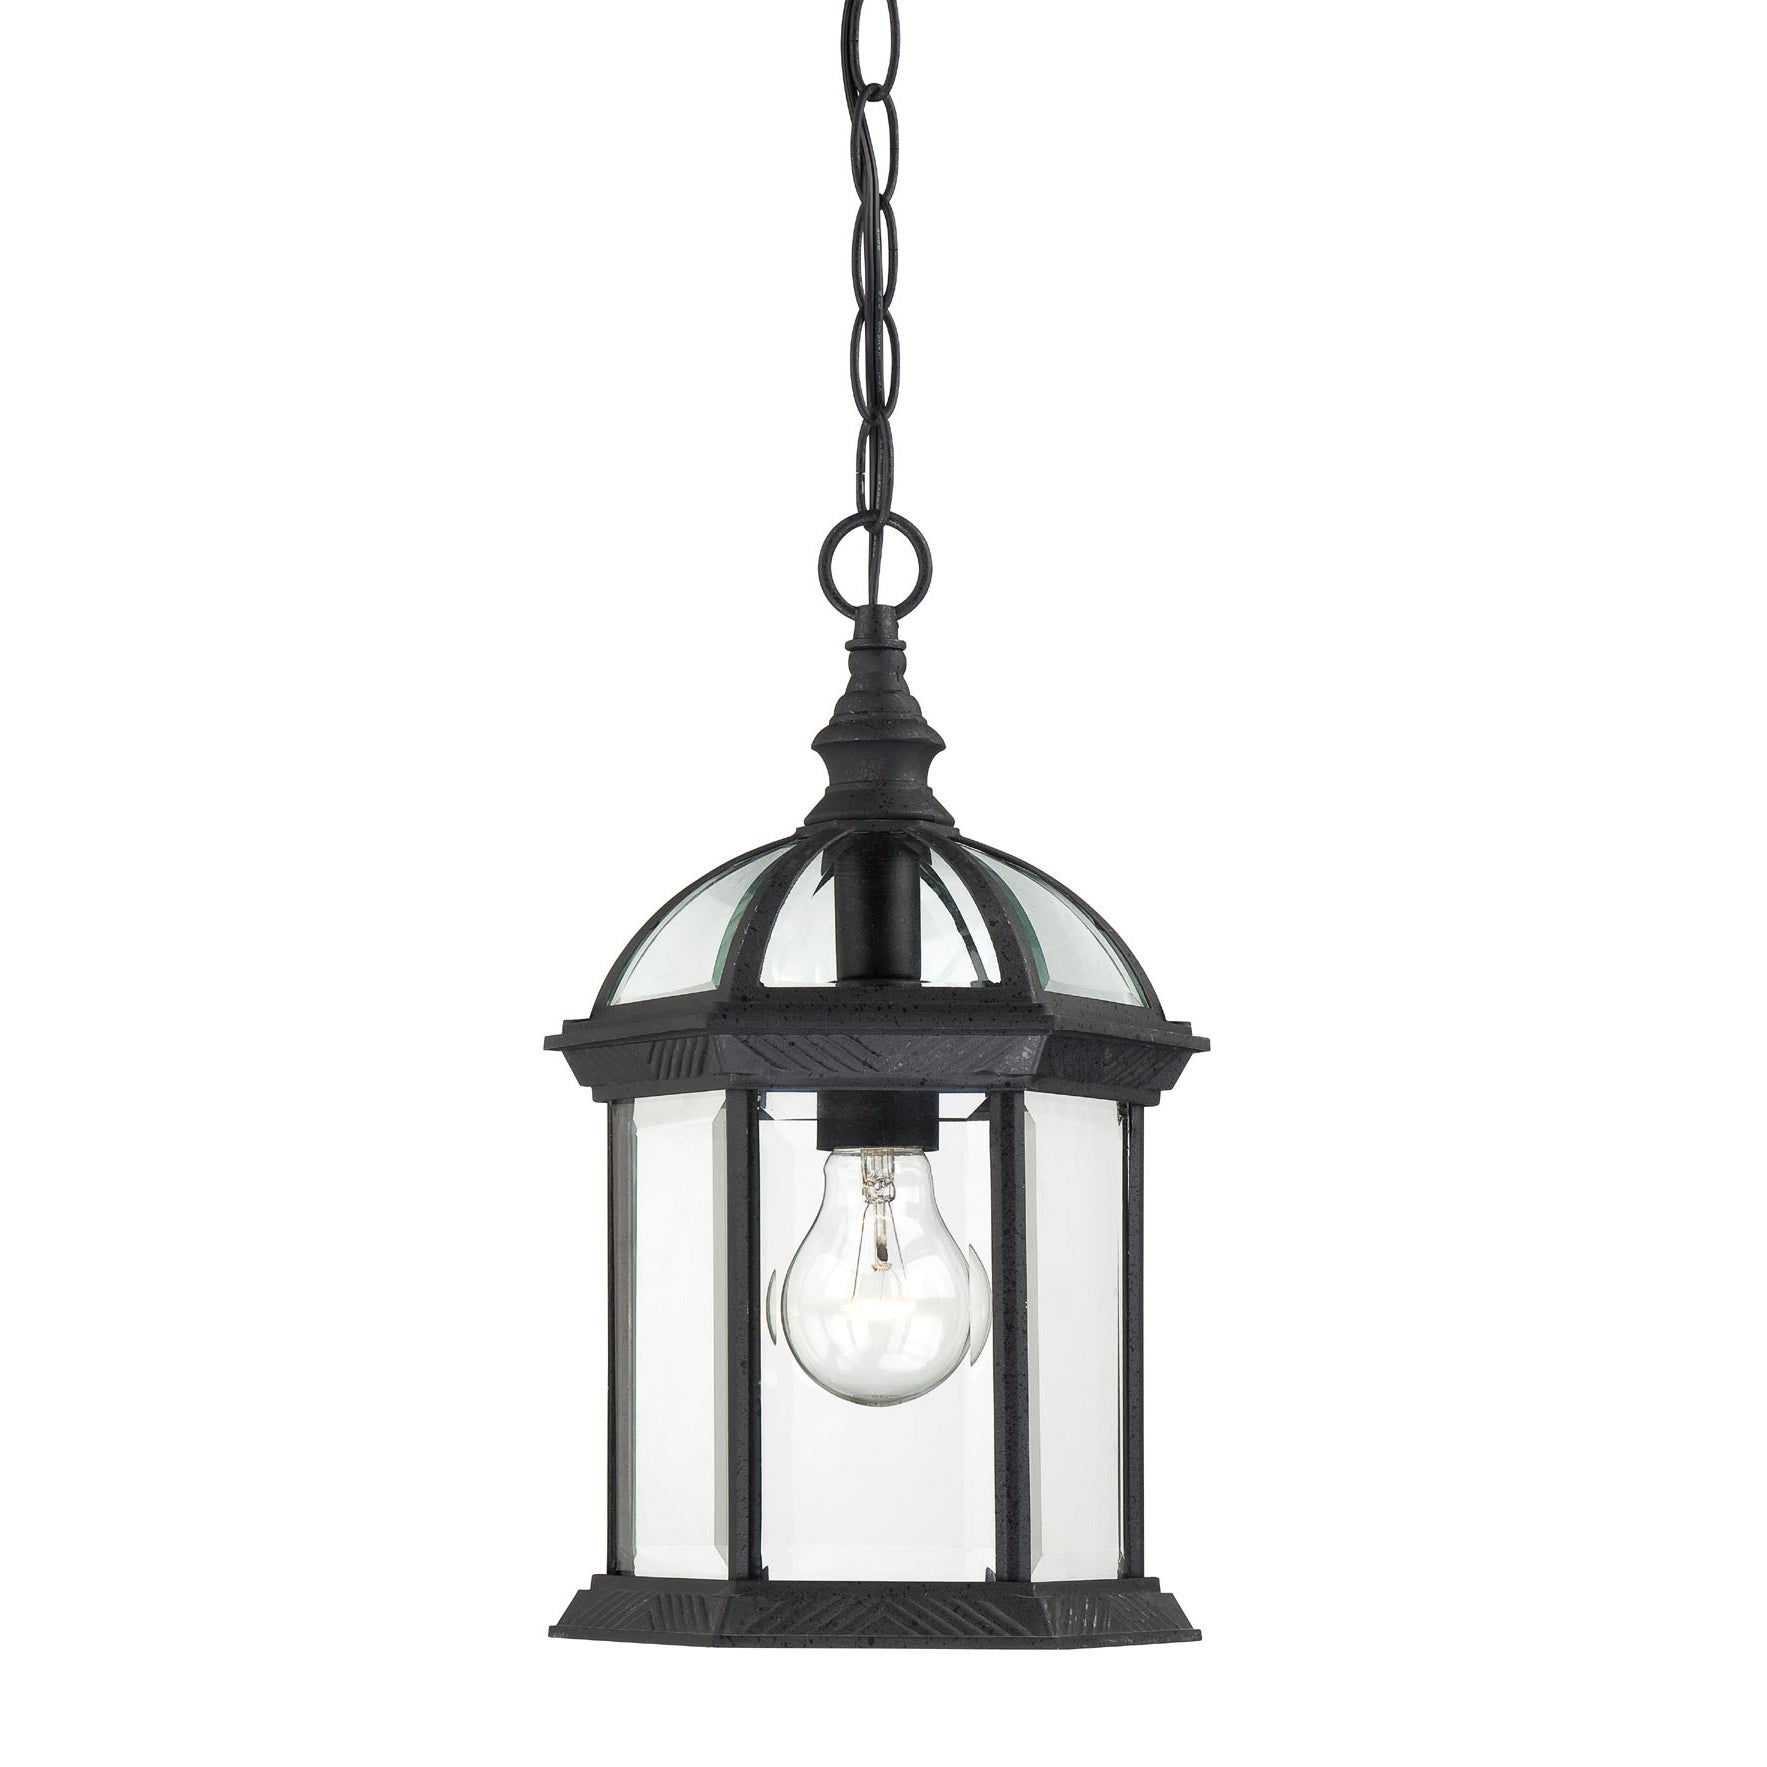 Nuvo Boxwood 1-light Textured Black 14-inch Hanging Fixture